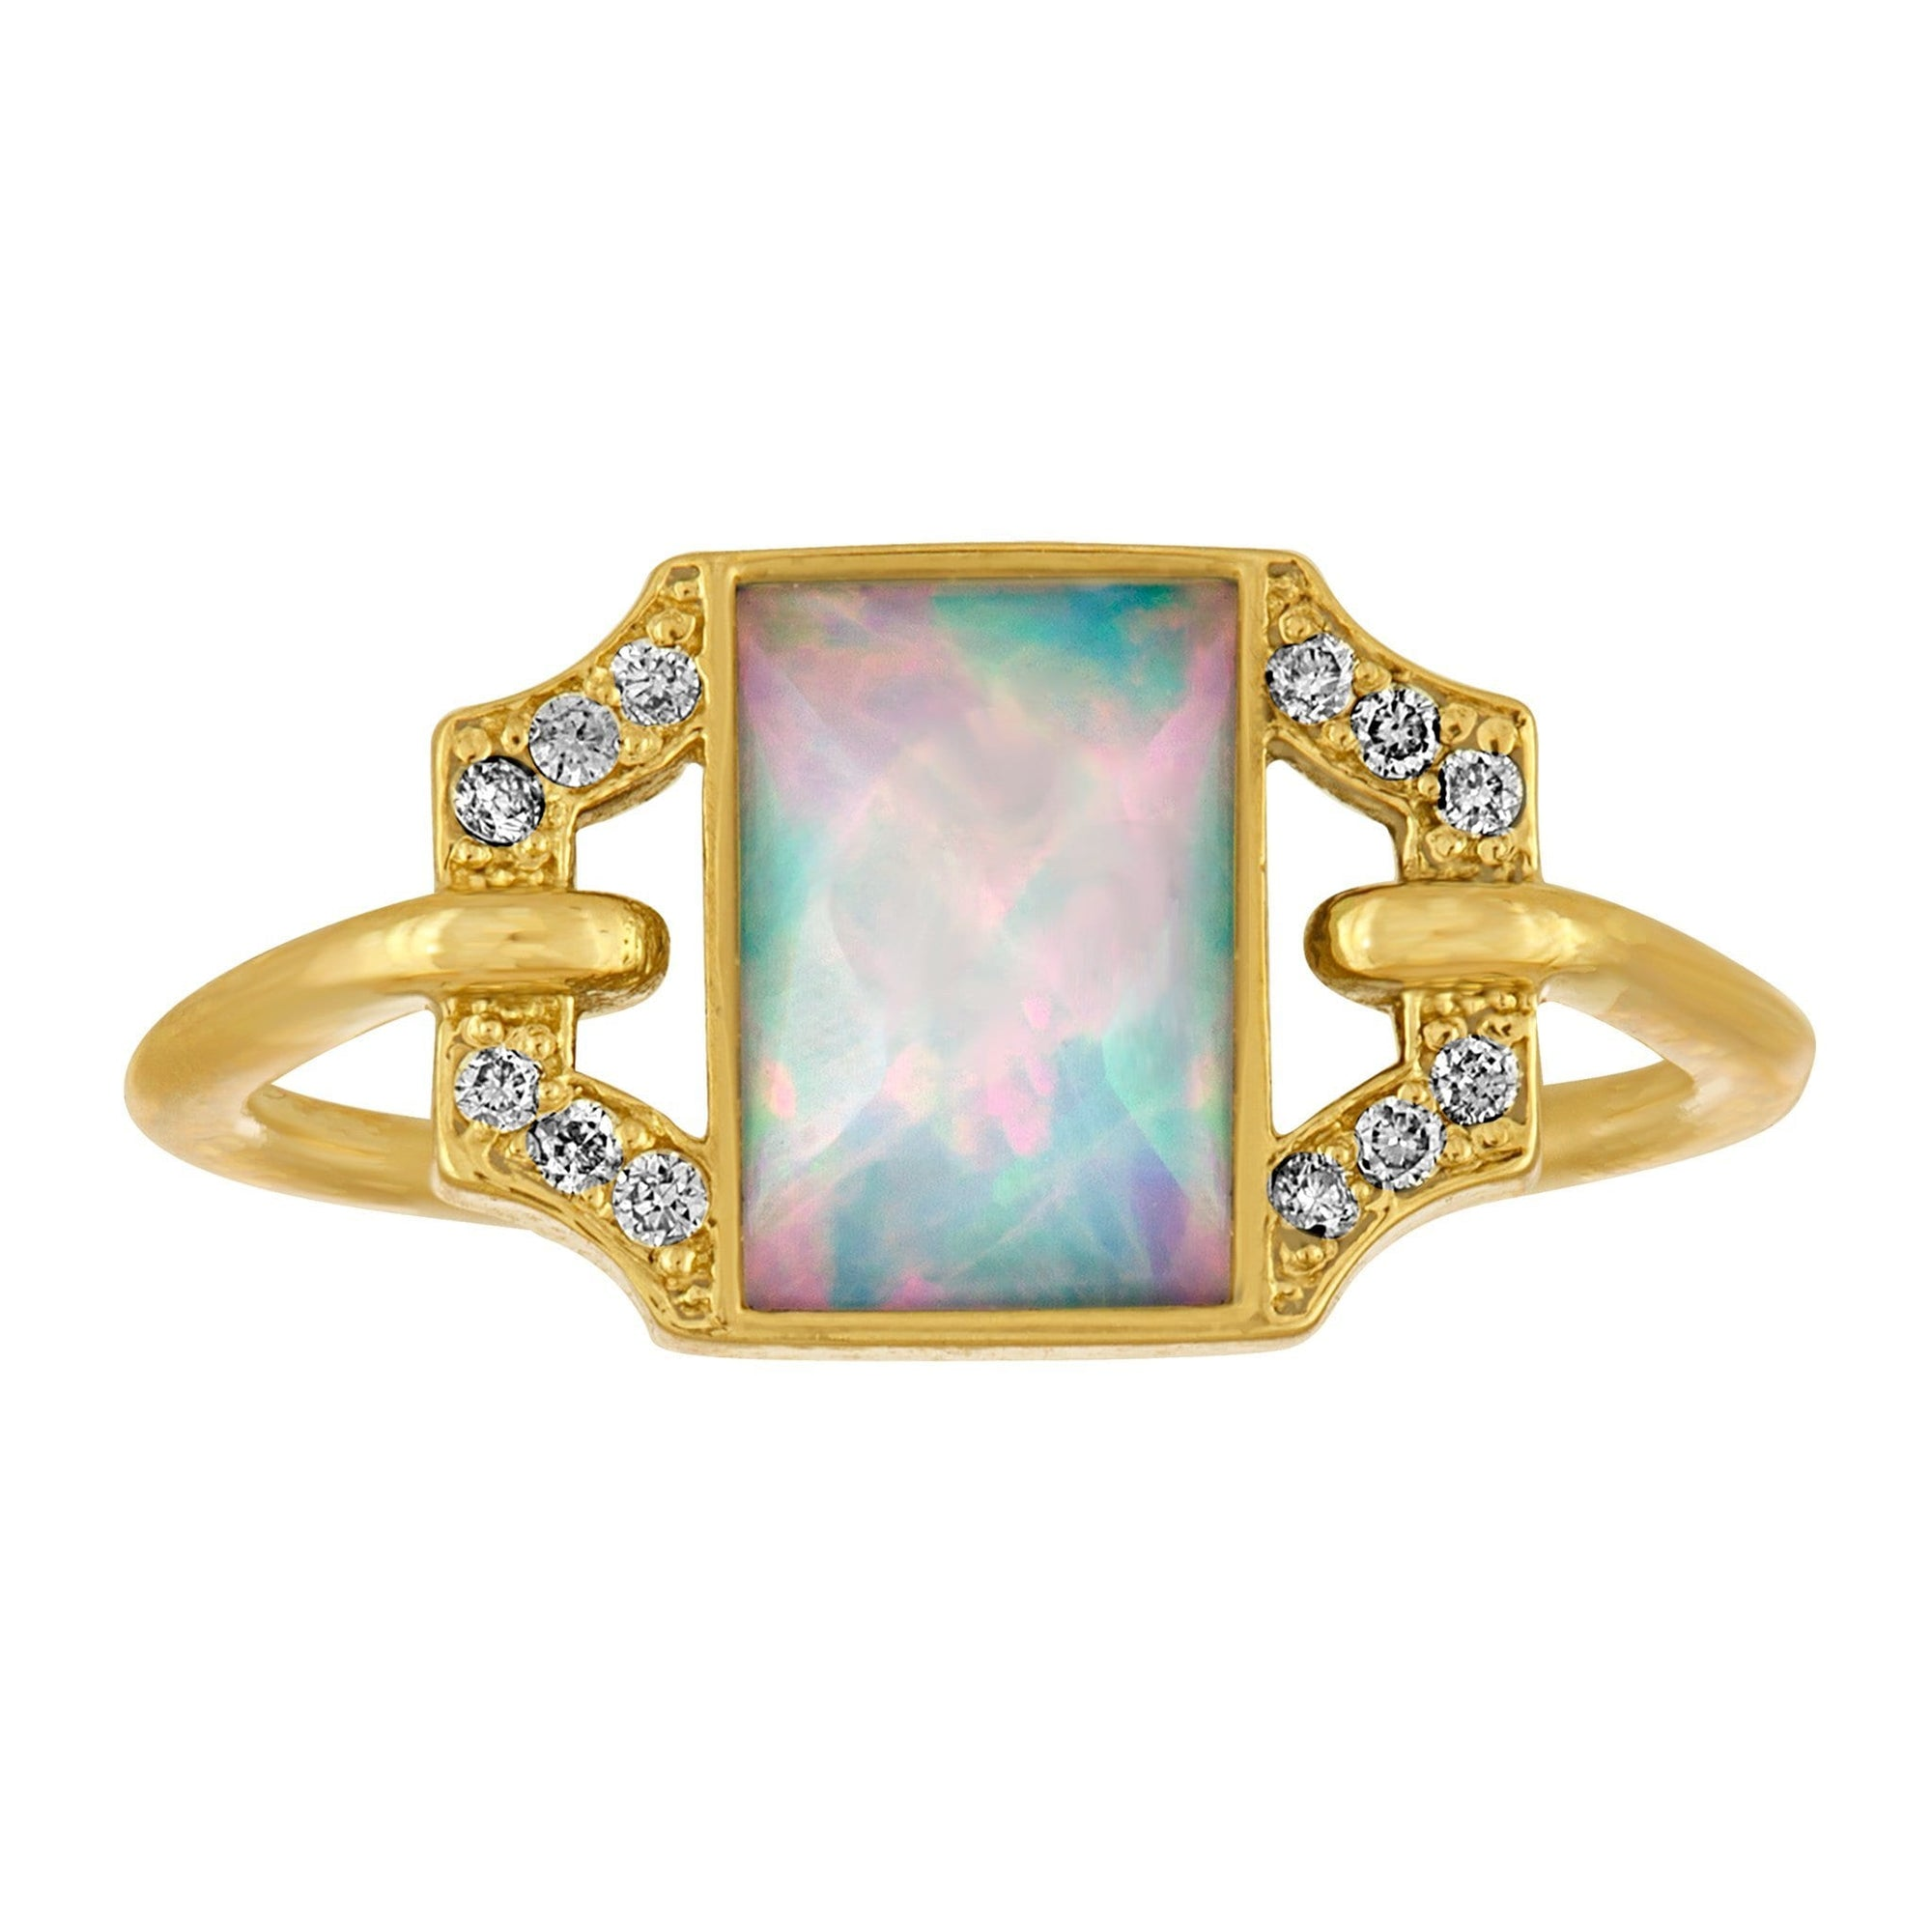 Edge Petite Ring: 18k Gold,Opal, Diamonds